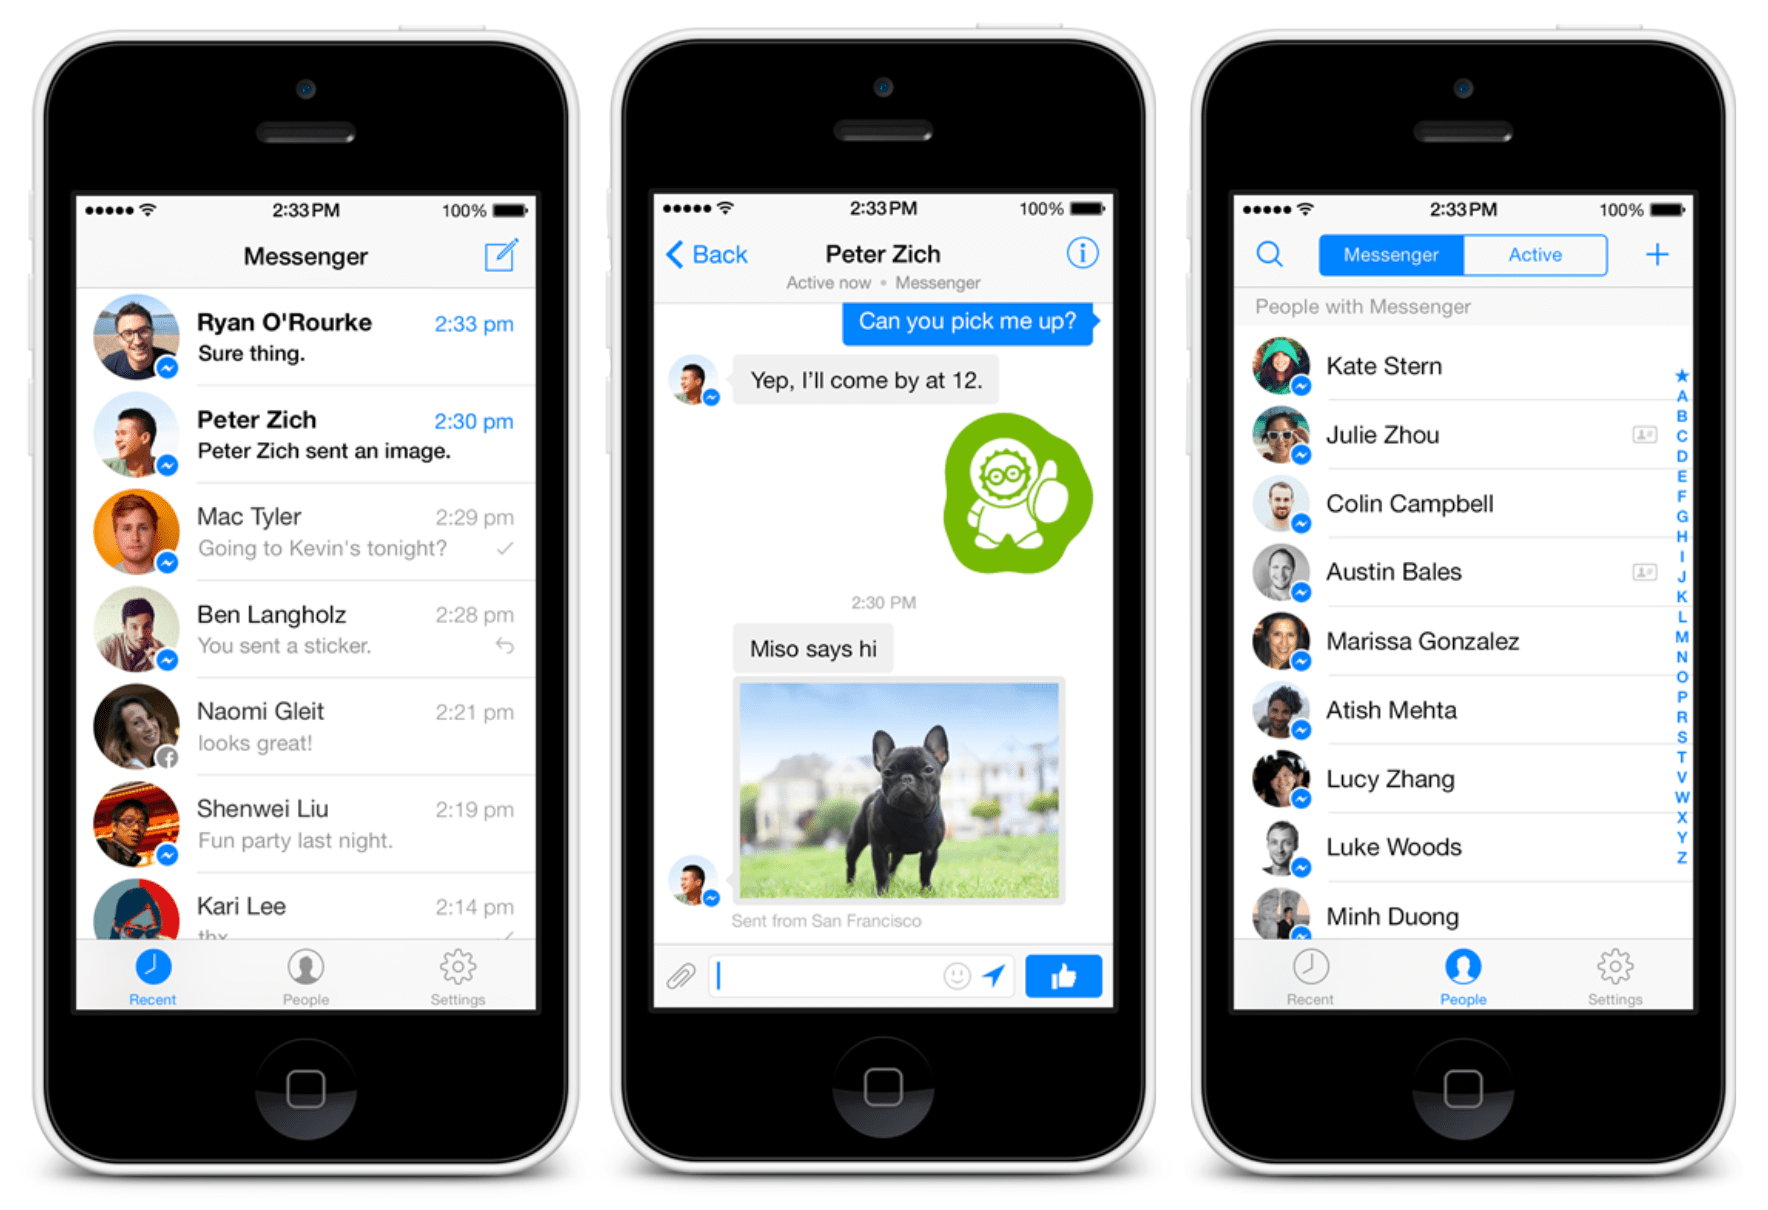 Descargar Messenger Descargar Facebook Messenger Para Iphone